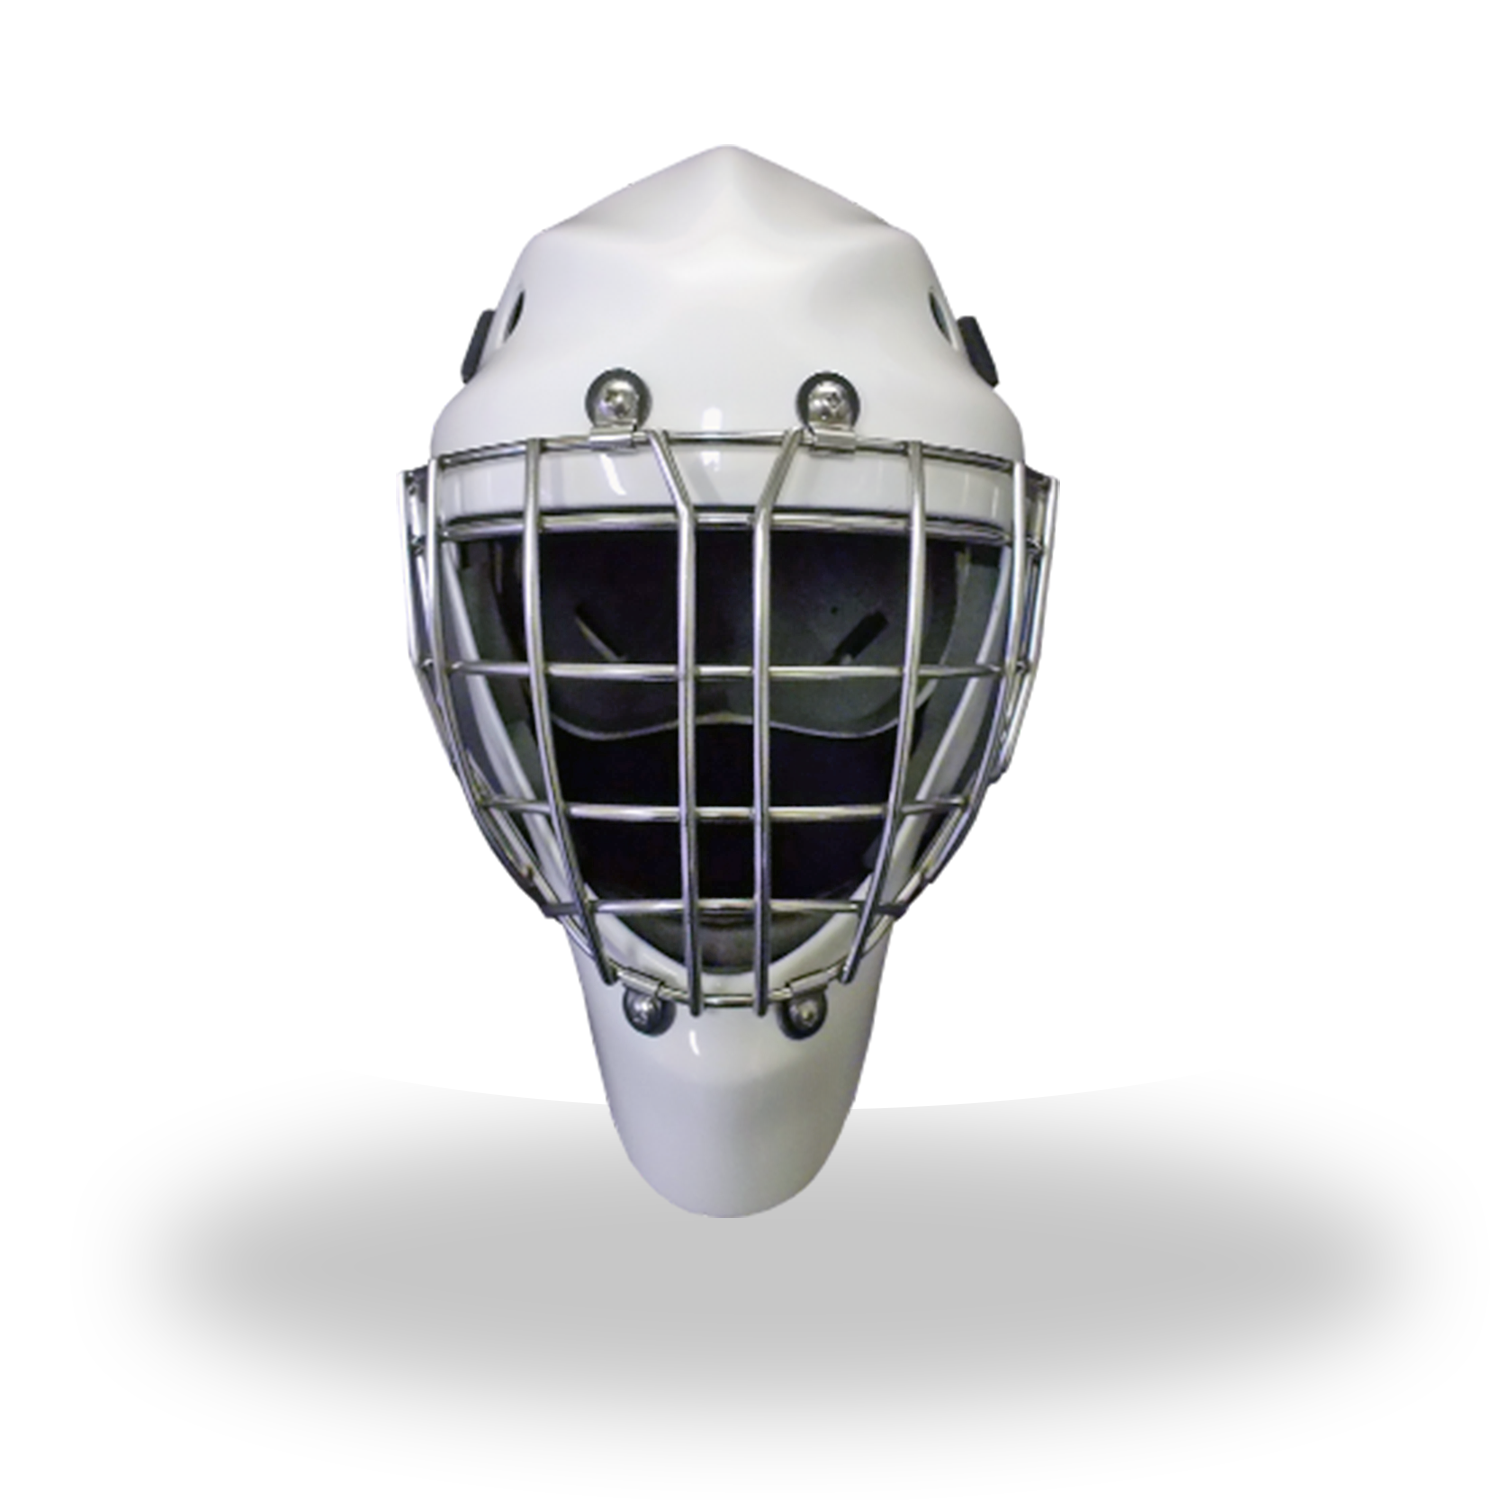 Steel Plate For Sale >> OTNYMASK X1 (INT/JR/) GOALIE MASK – Don Simmons Sports Inc